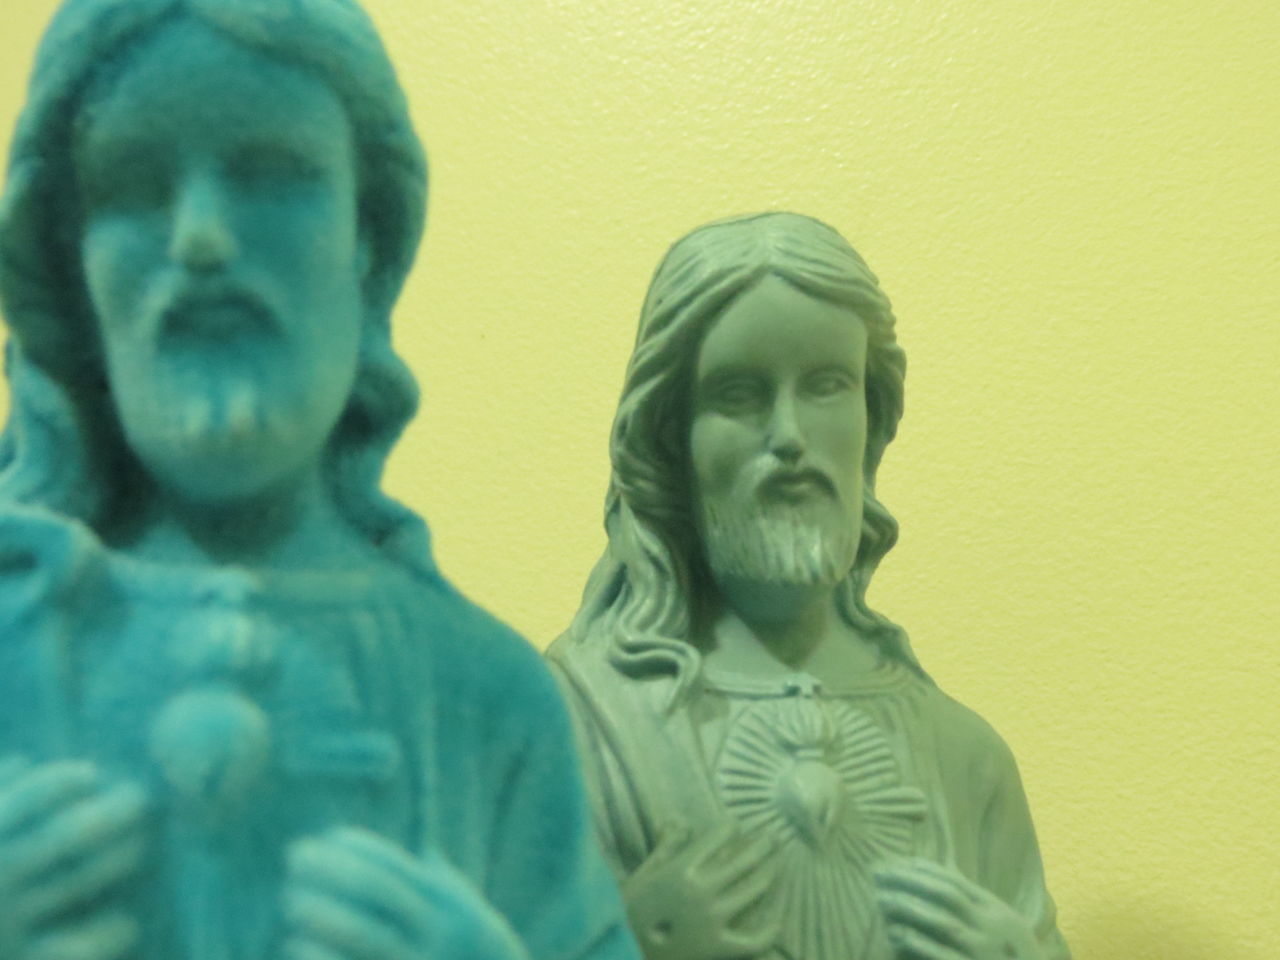 Statue No People Close-up Day Jesus Christ Jesus Christ Duplicate Two Double Exposure Double Vision Lifestyles People Statue Blue Two Tones Two Tone Shades Of Blue Heaven Religion Relic Legend God Christ Almighty Shadows